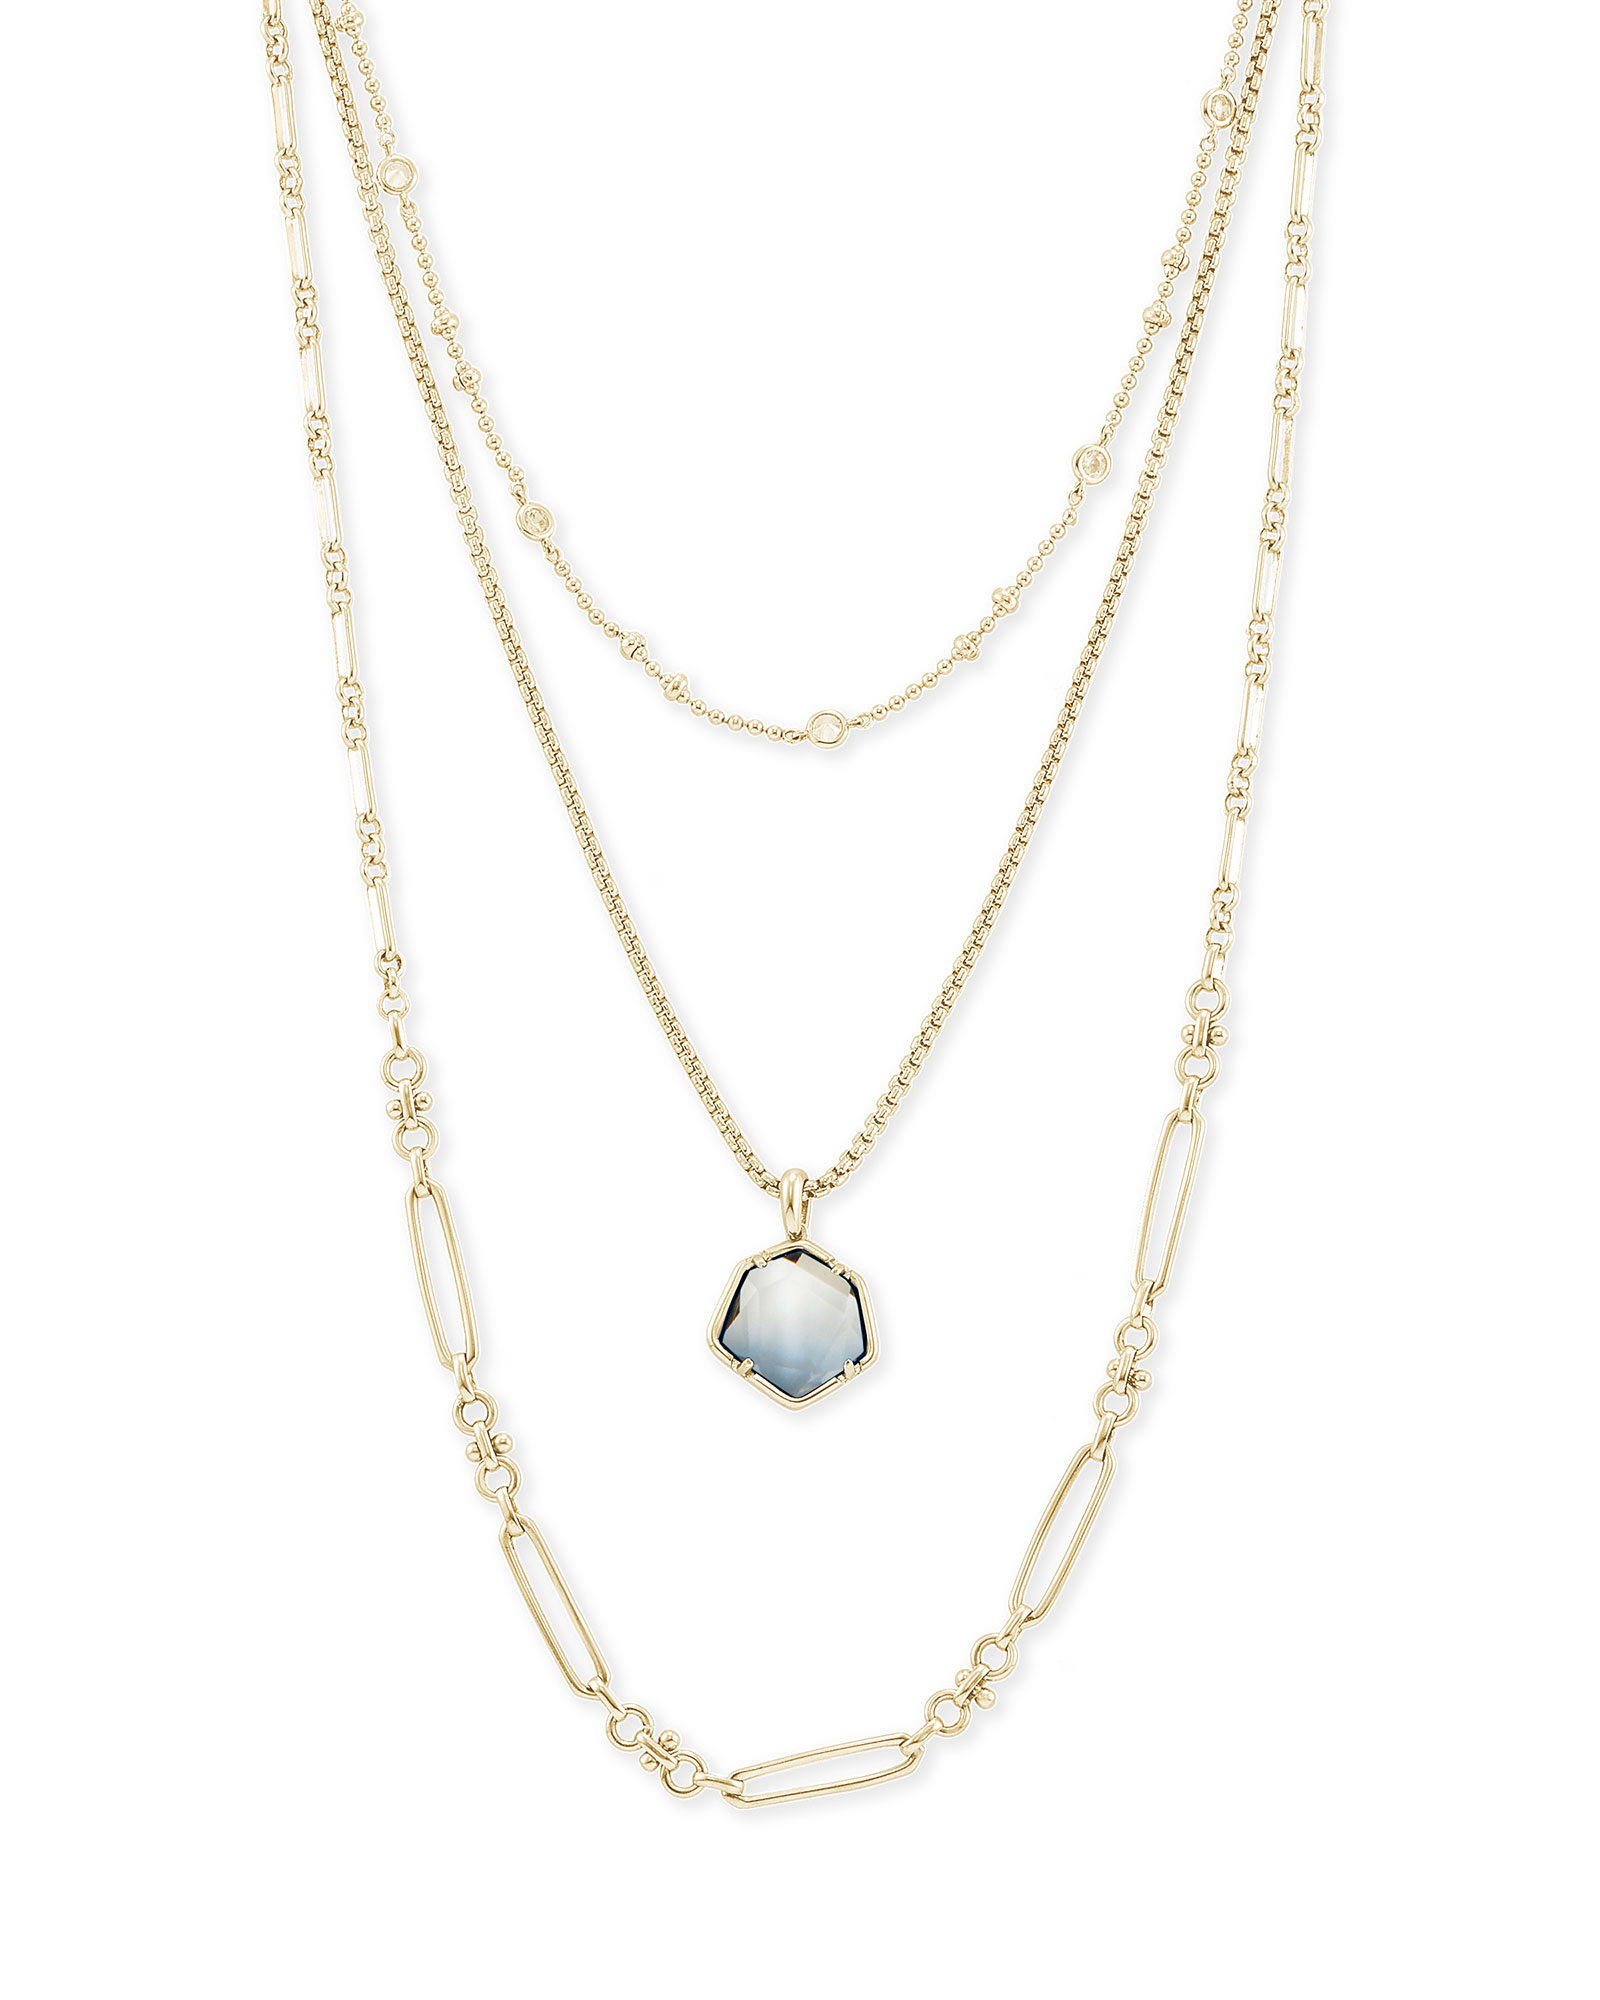 Vanessa Gold Multi Strand Necklace in Steel Gray Ombre